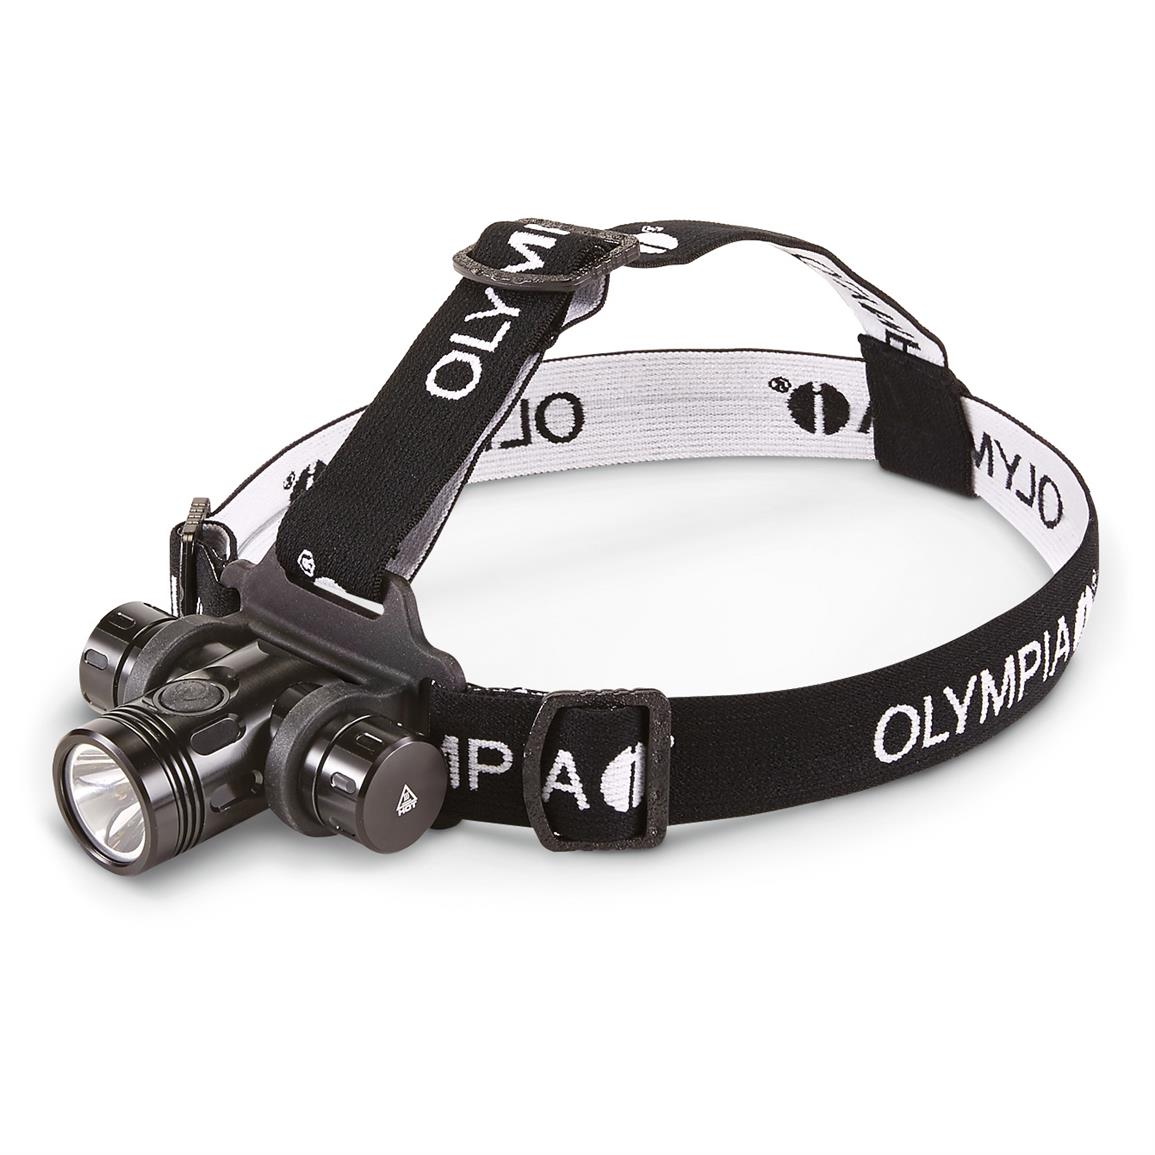 Olympia Explorer Series Waterproof Headlamp, 550 Lumen